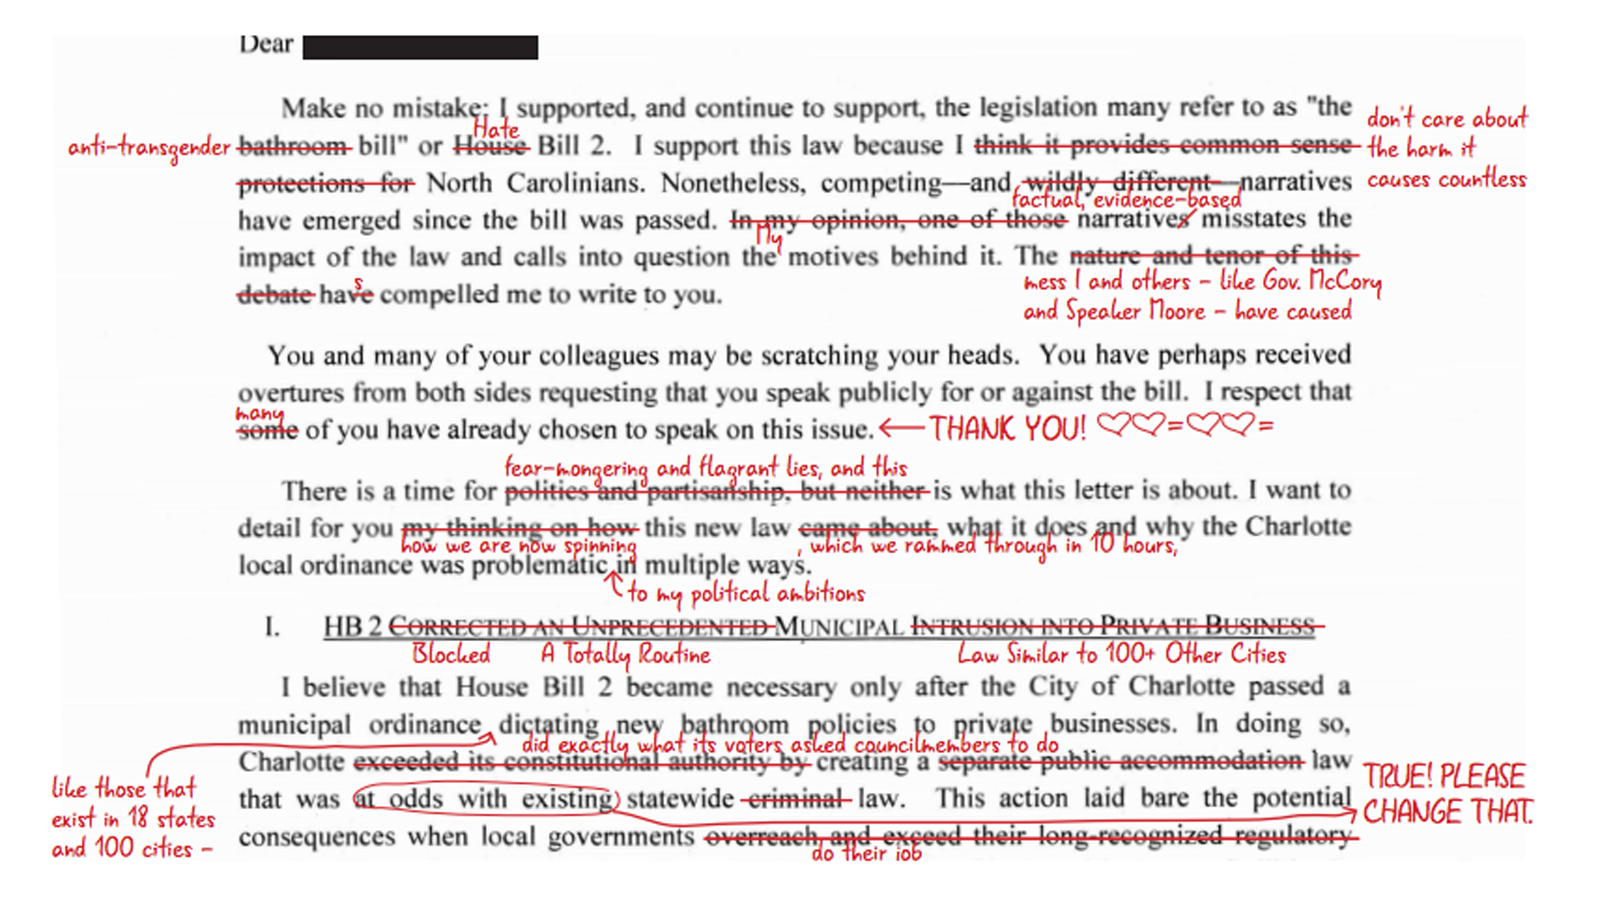 NC Senate President Berger Sends Misleading Letter to CEOs, Doubles Down on Anti-LGBT HB2